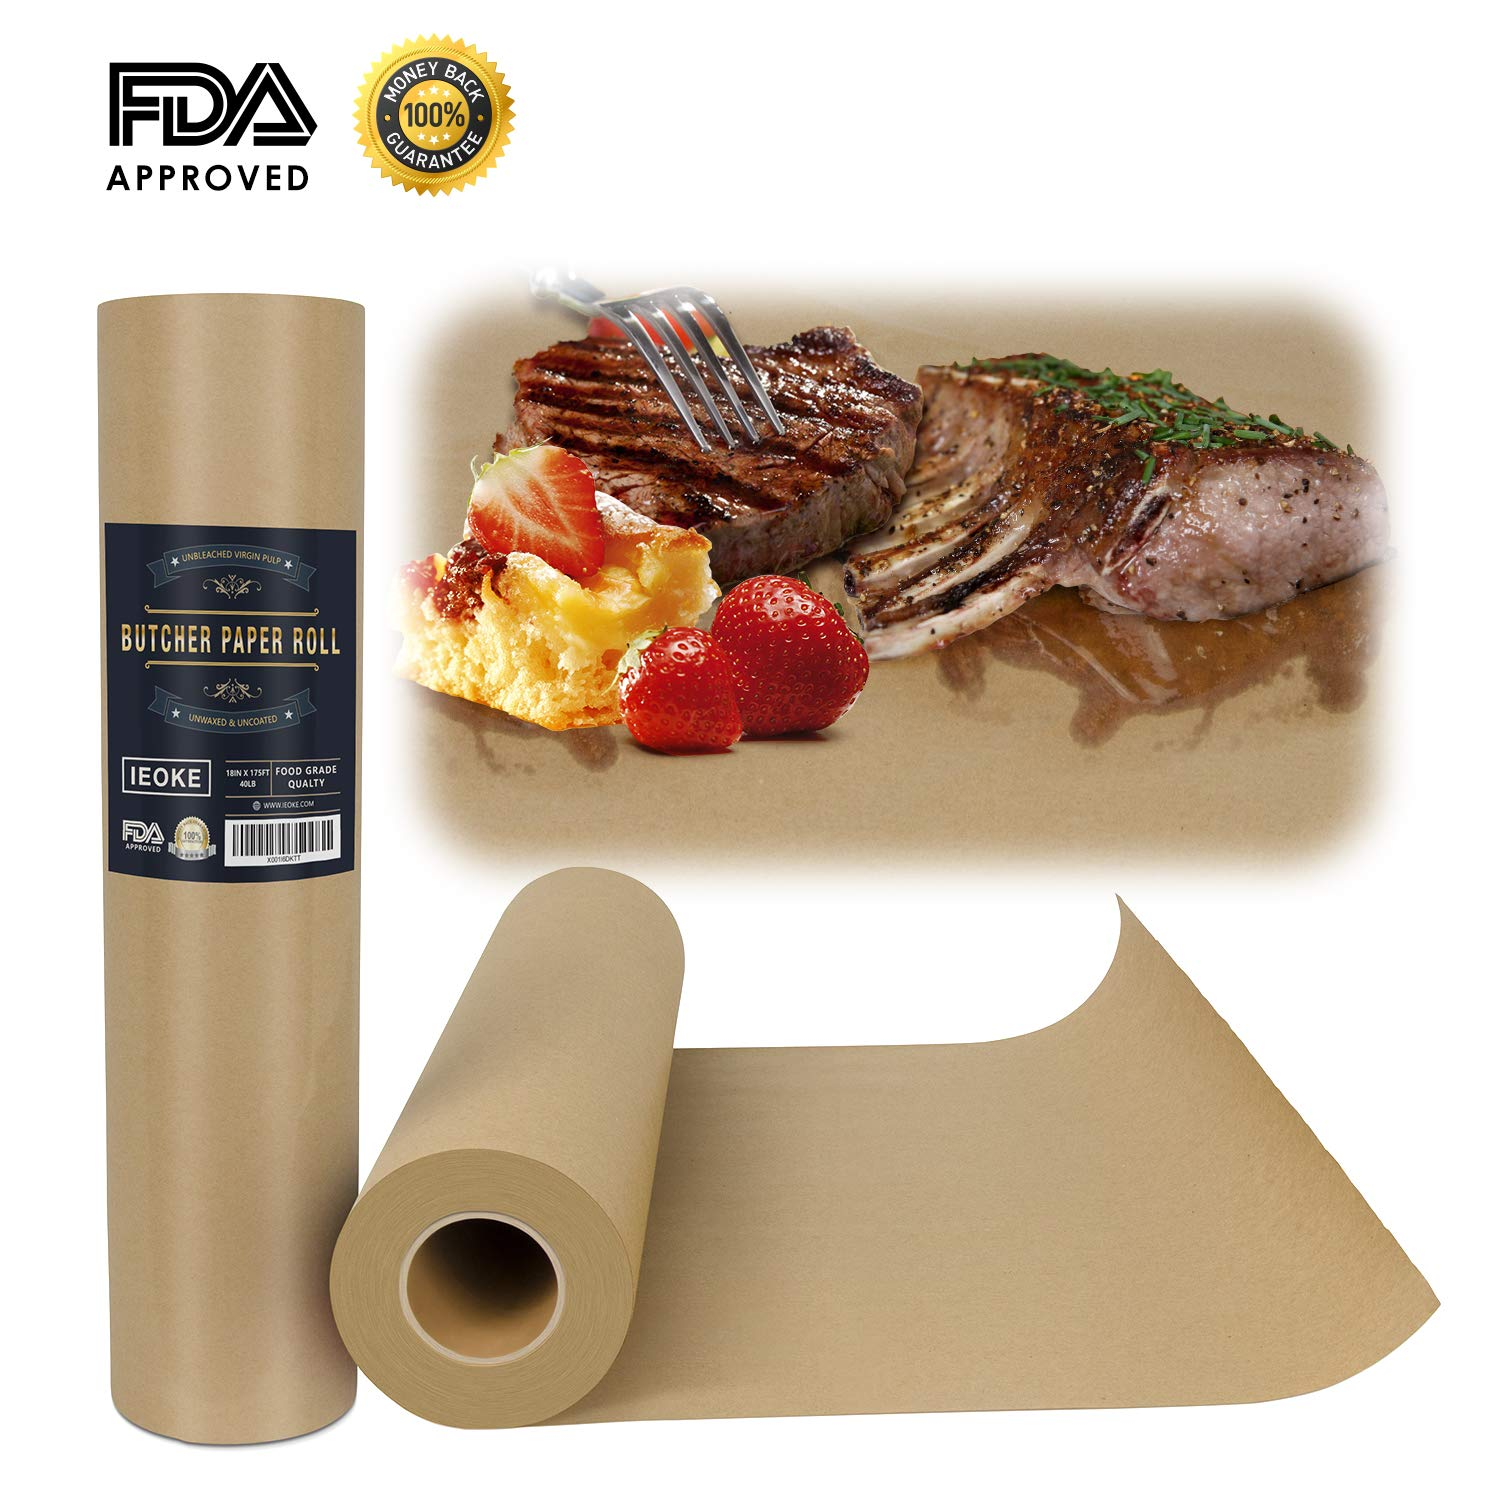 """IEOKE Butcher Kraft Paper Roll - 18 """" x 175' (2100"""") Wrapping Paper for Beef Brisket FDA Approved Perfect for Smoking BBQ Meats Cooking Paper"""